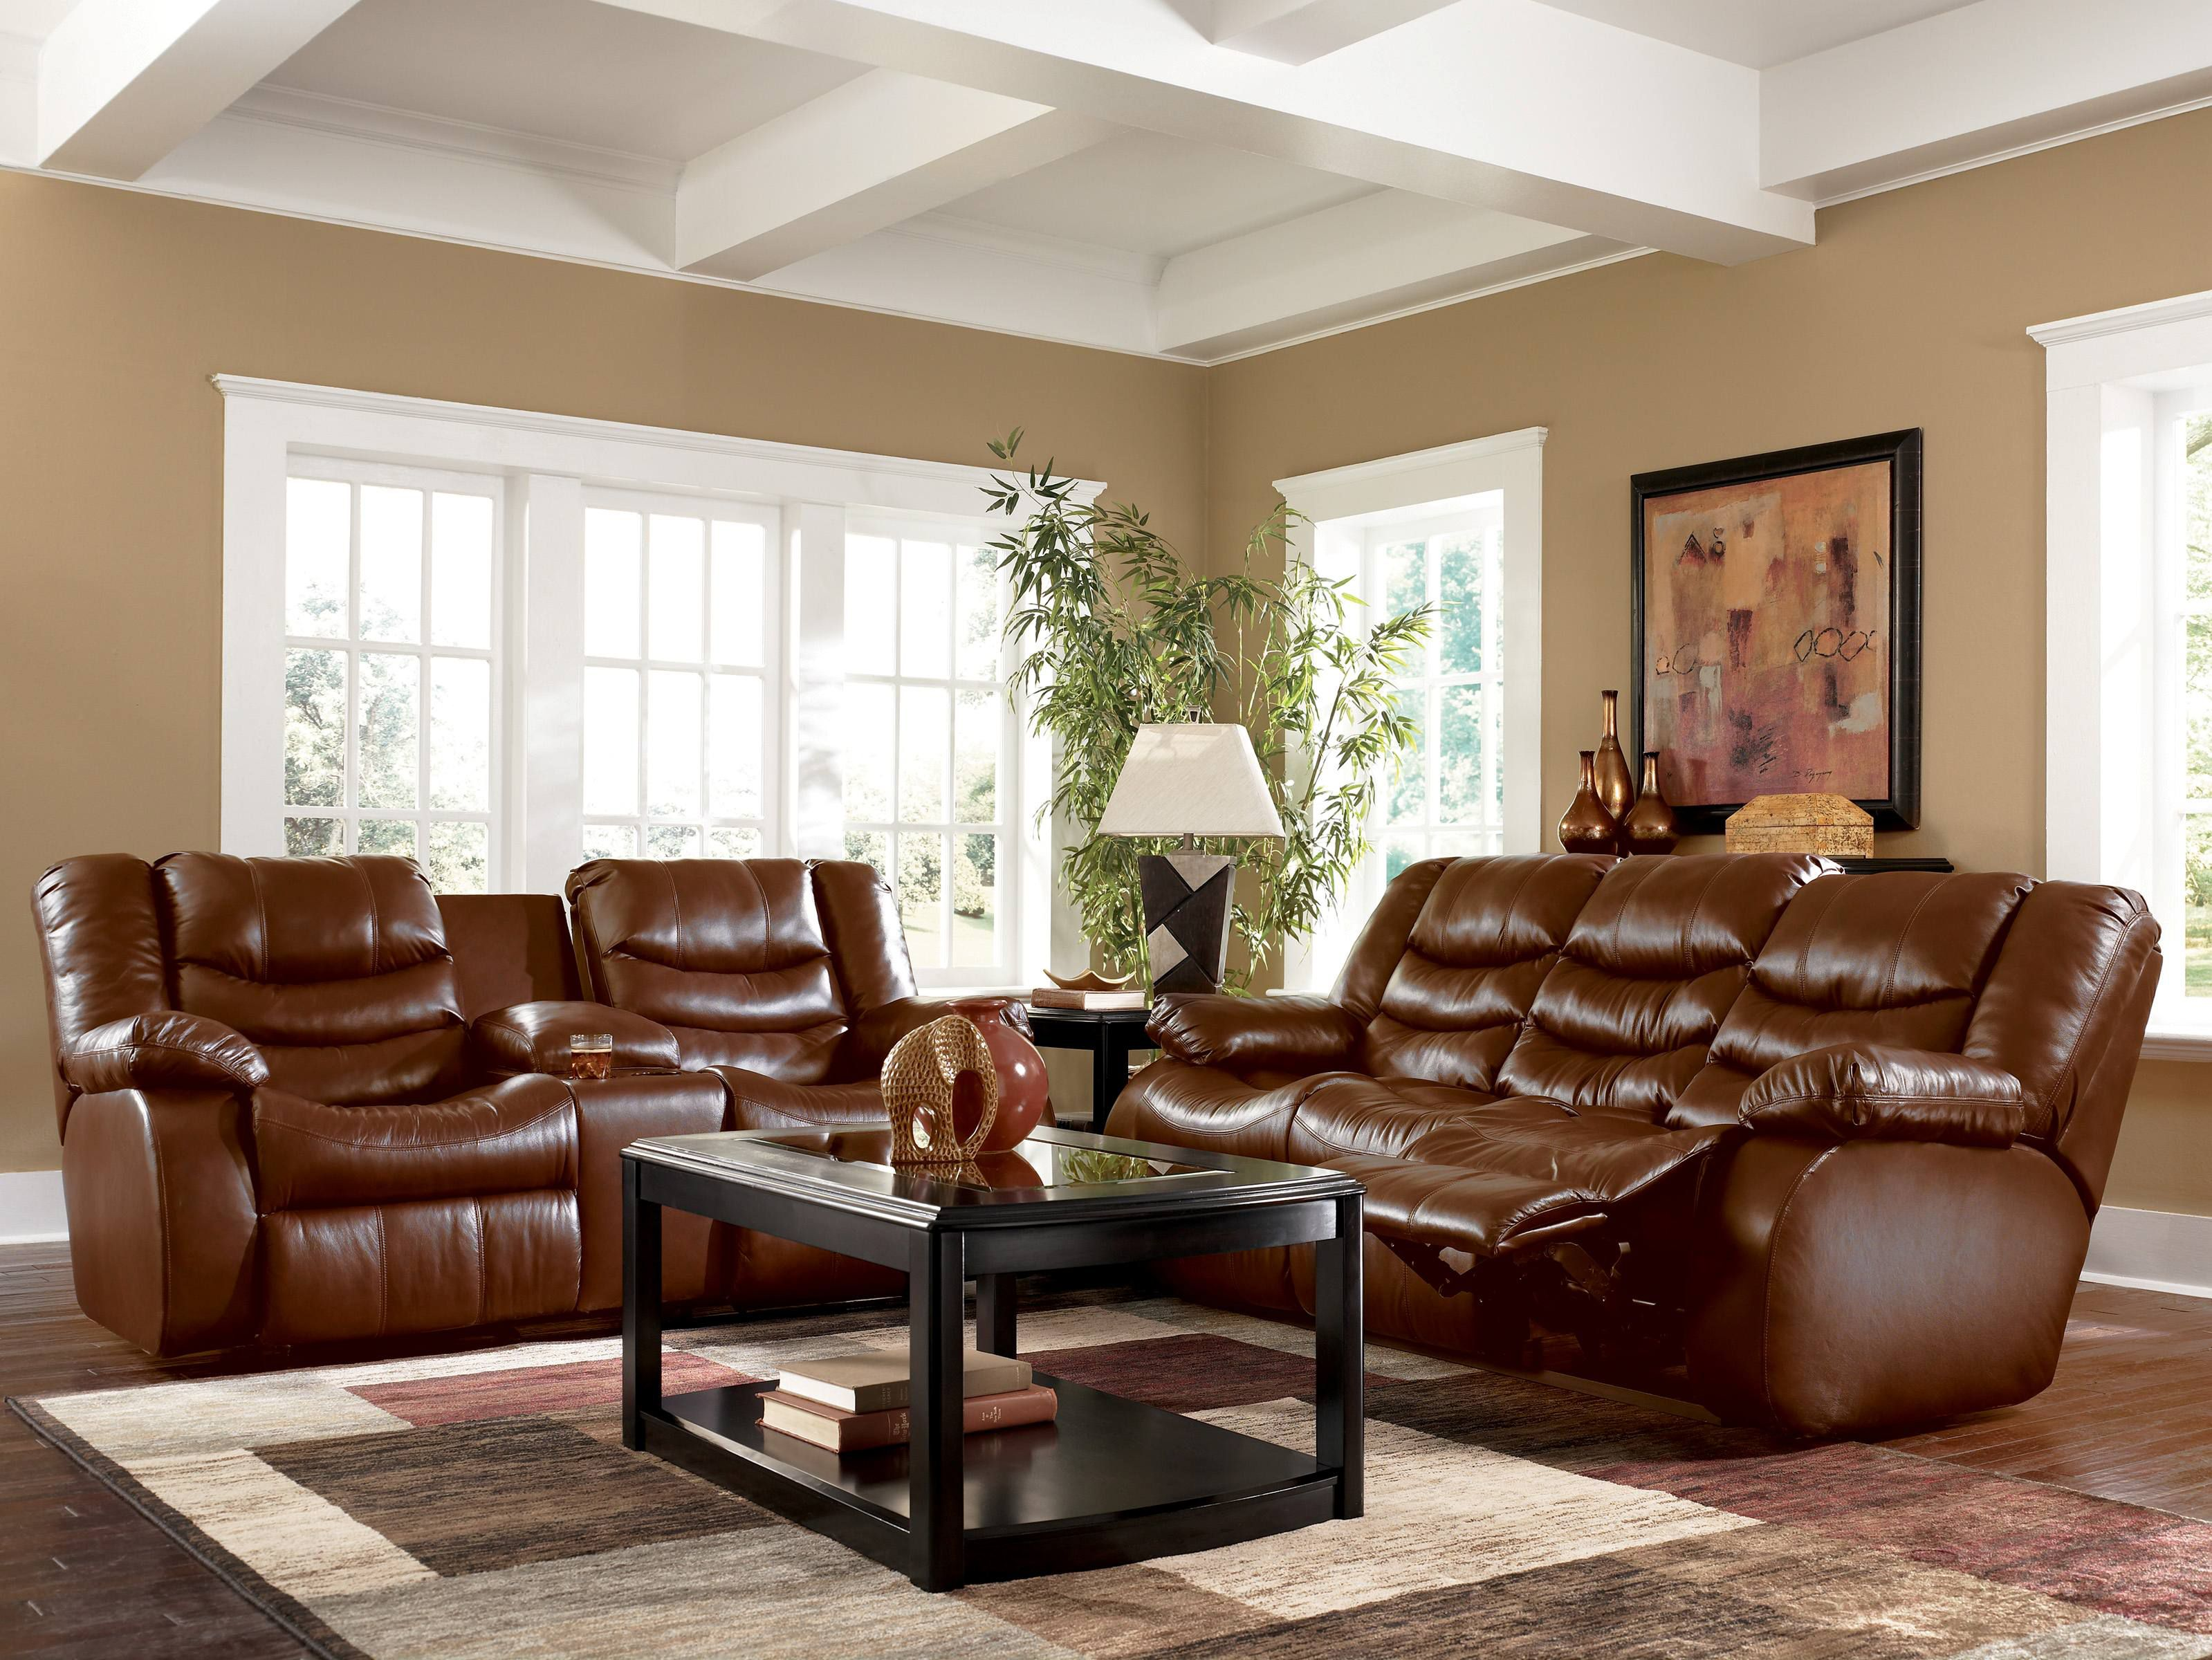 Living Room Ideas With Leather Furniture Mesmerizing Living Room With Brown Couches  I Like The White Around The . Review